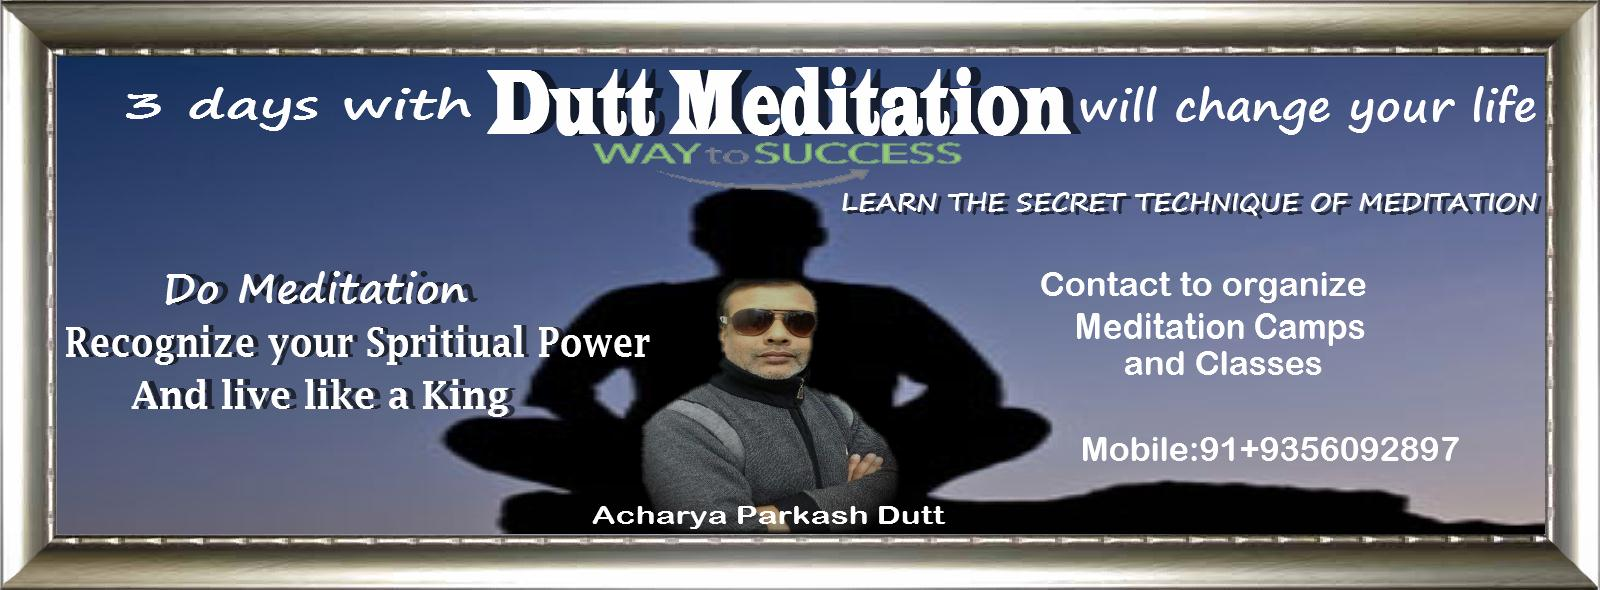 Meditation and Kundalini Shakti Jagran 3 days with Dutt Meditation will change your life